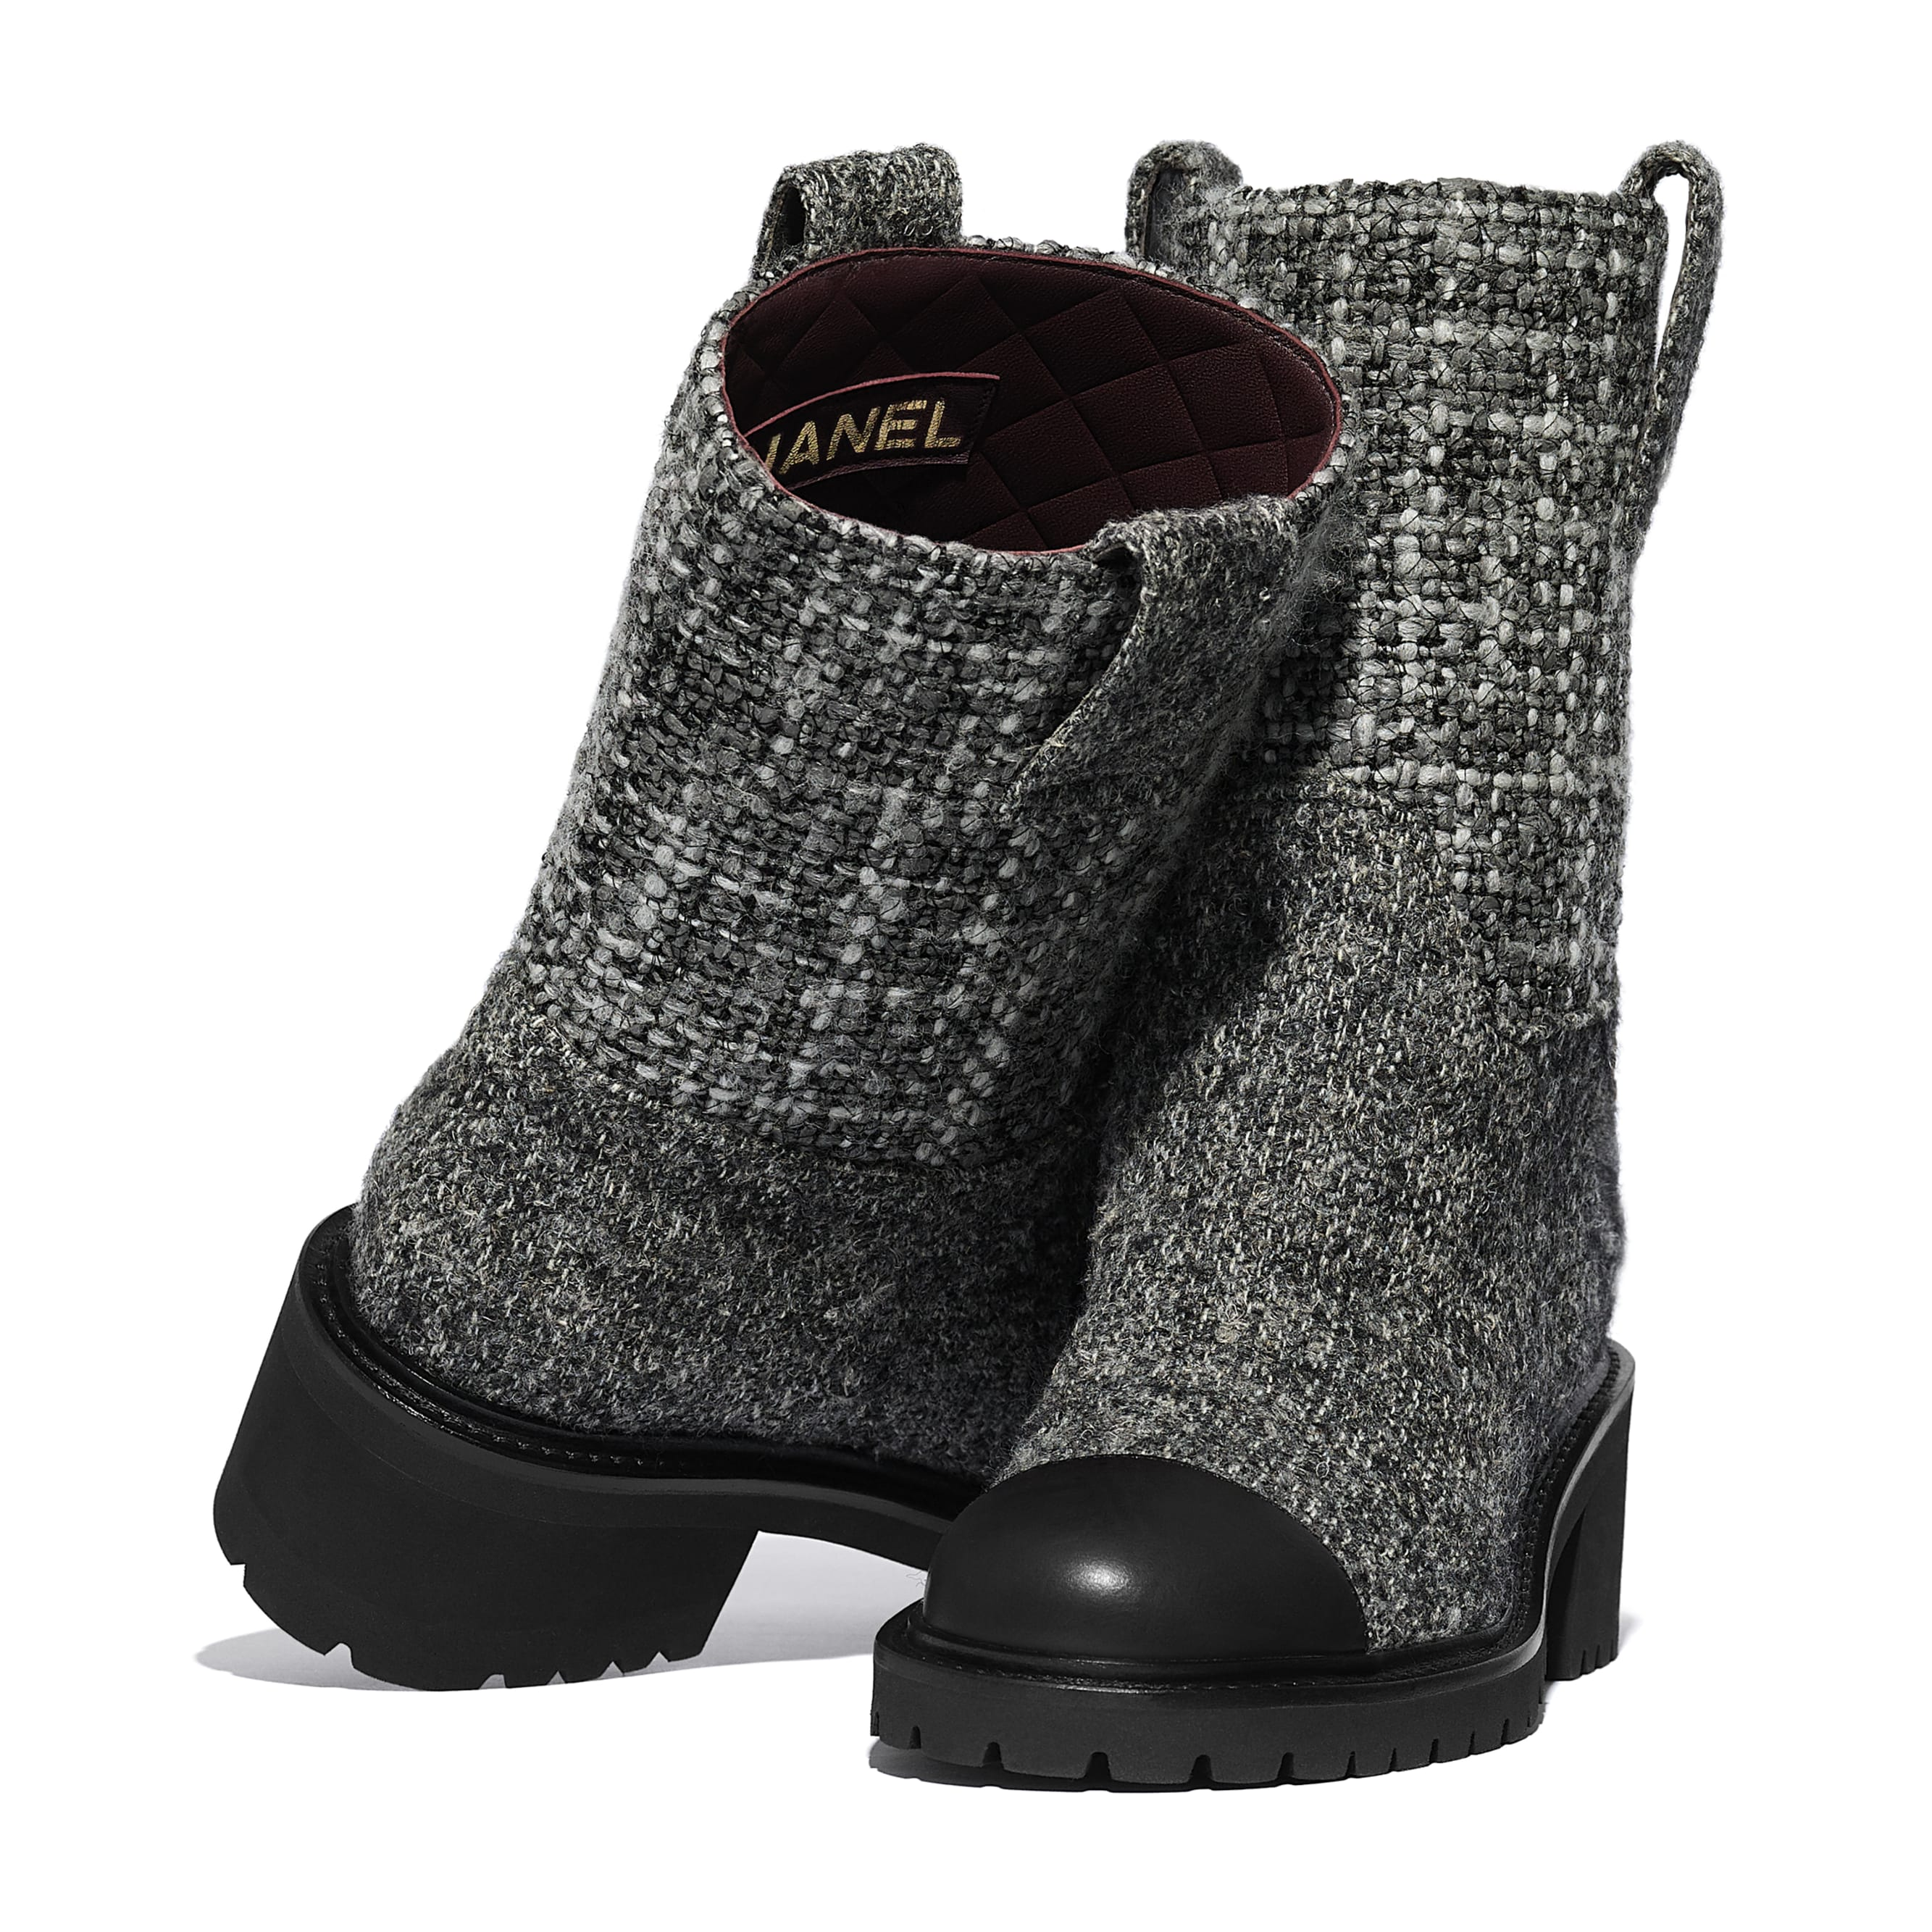 Ankle Boots - Grey & Black - Tweed & Calfskin - CHANEL - Extra view - see standard sized version